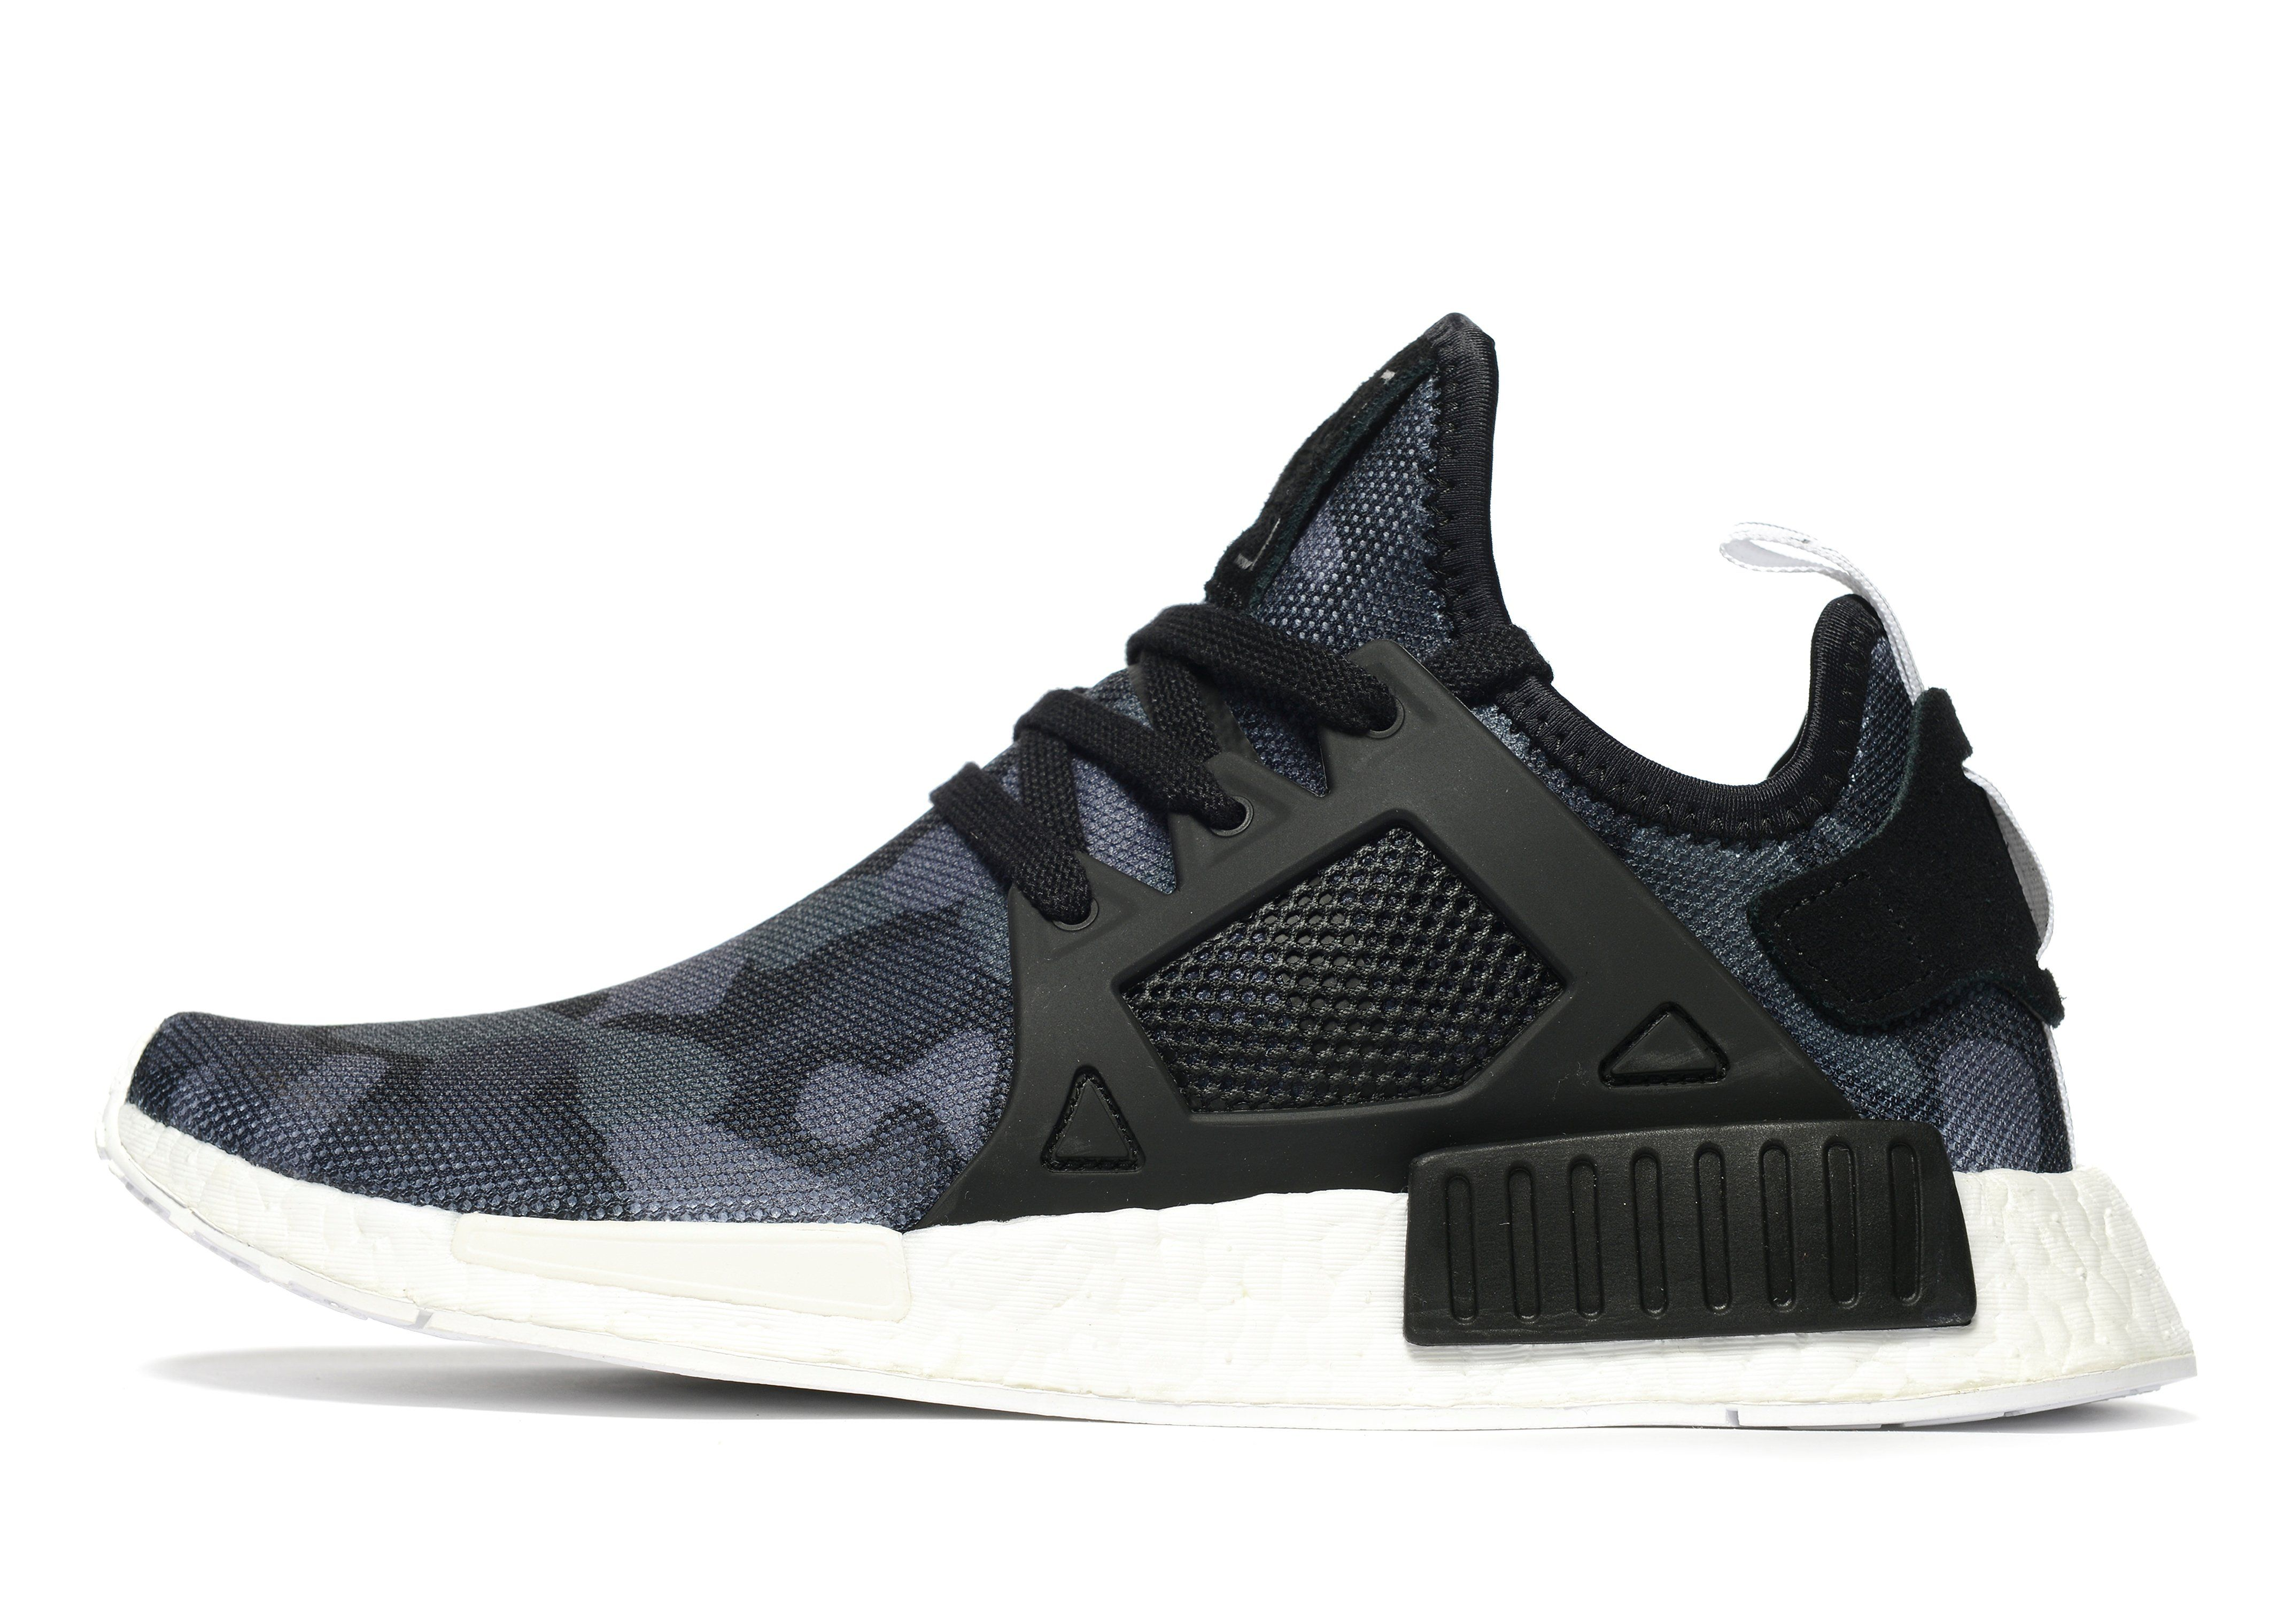 fieags Adidas NMD – Adidas NMD R1 & NMD R1 Runner | JD Sports